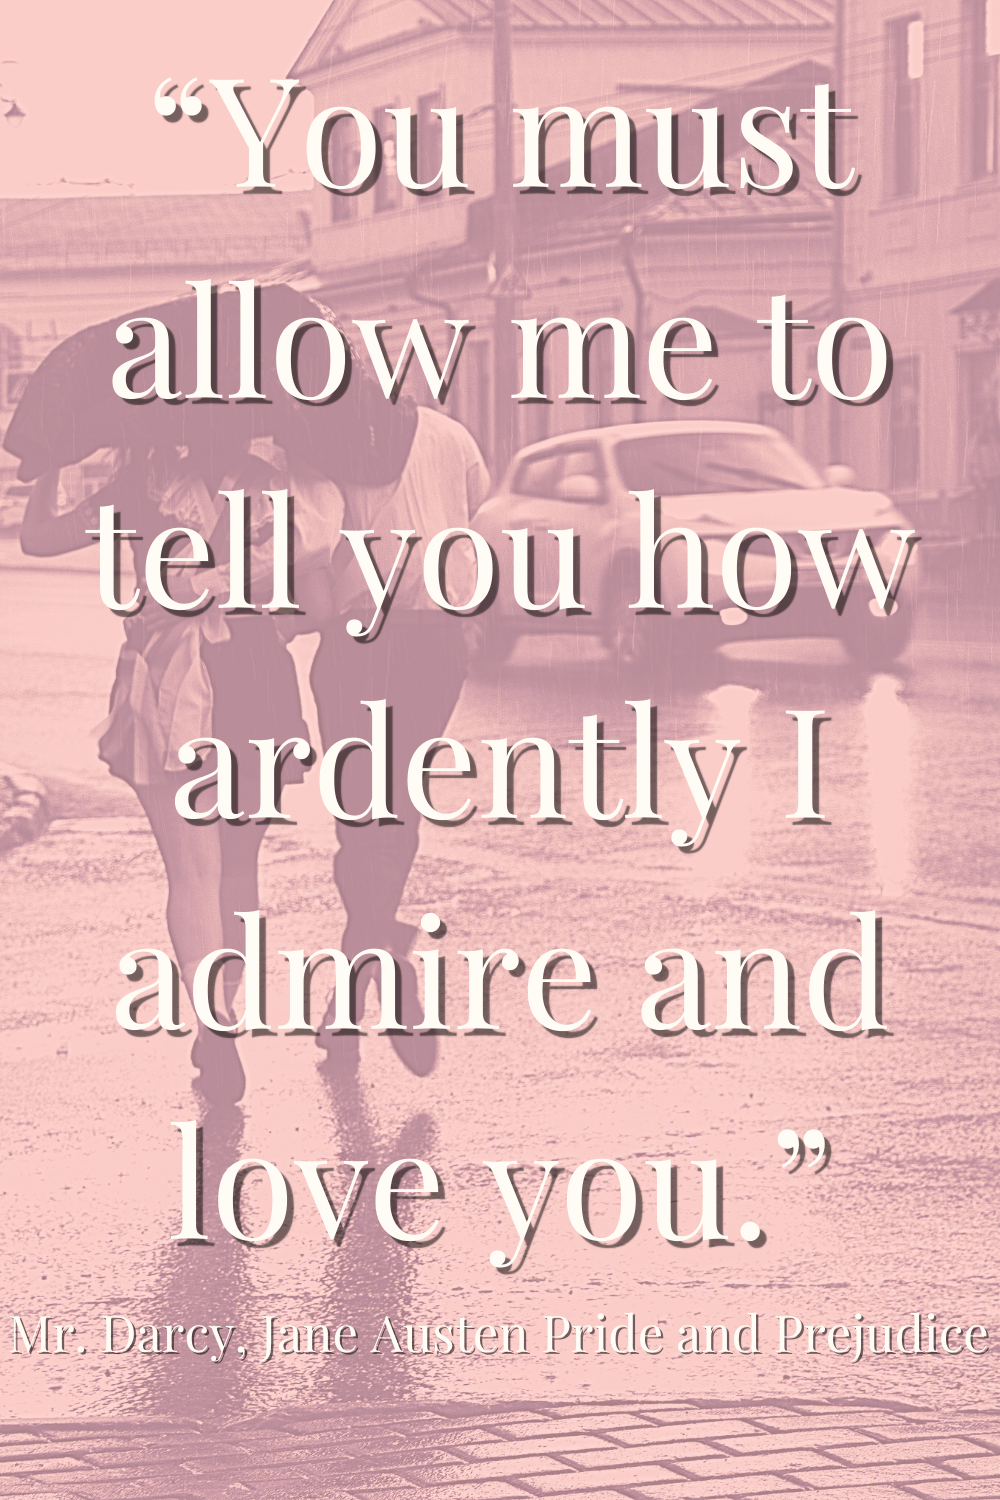 You must allow me to tell you how ardently I admire and love you. Mr. Darcy quote from Pride & Prejudice